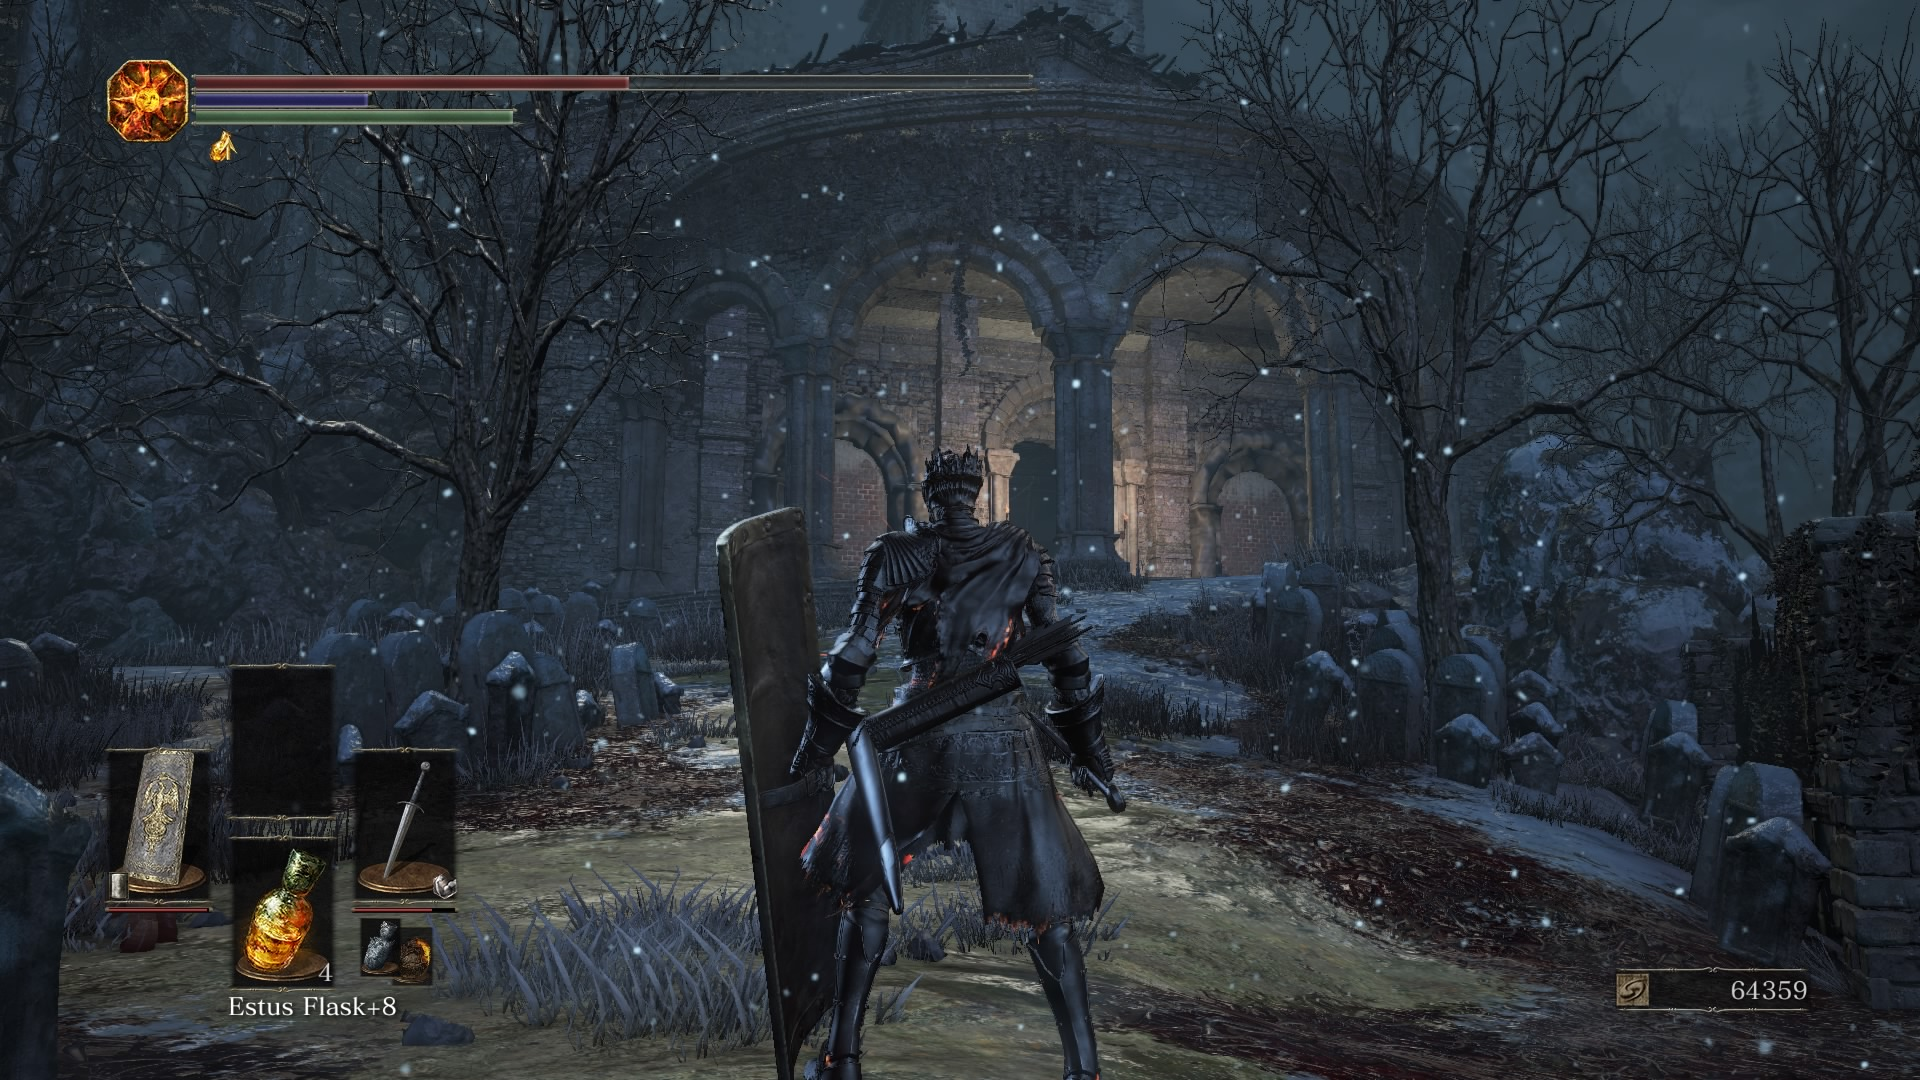 Climb to the rooftops, use the tower ladder, and open the graveyard gate to access the archive.